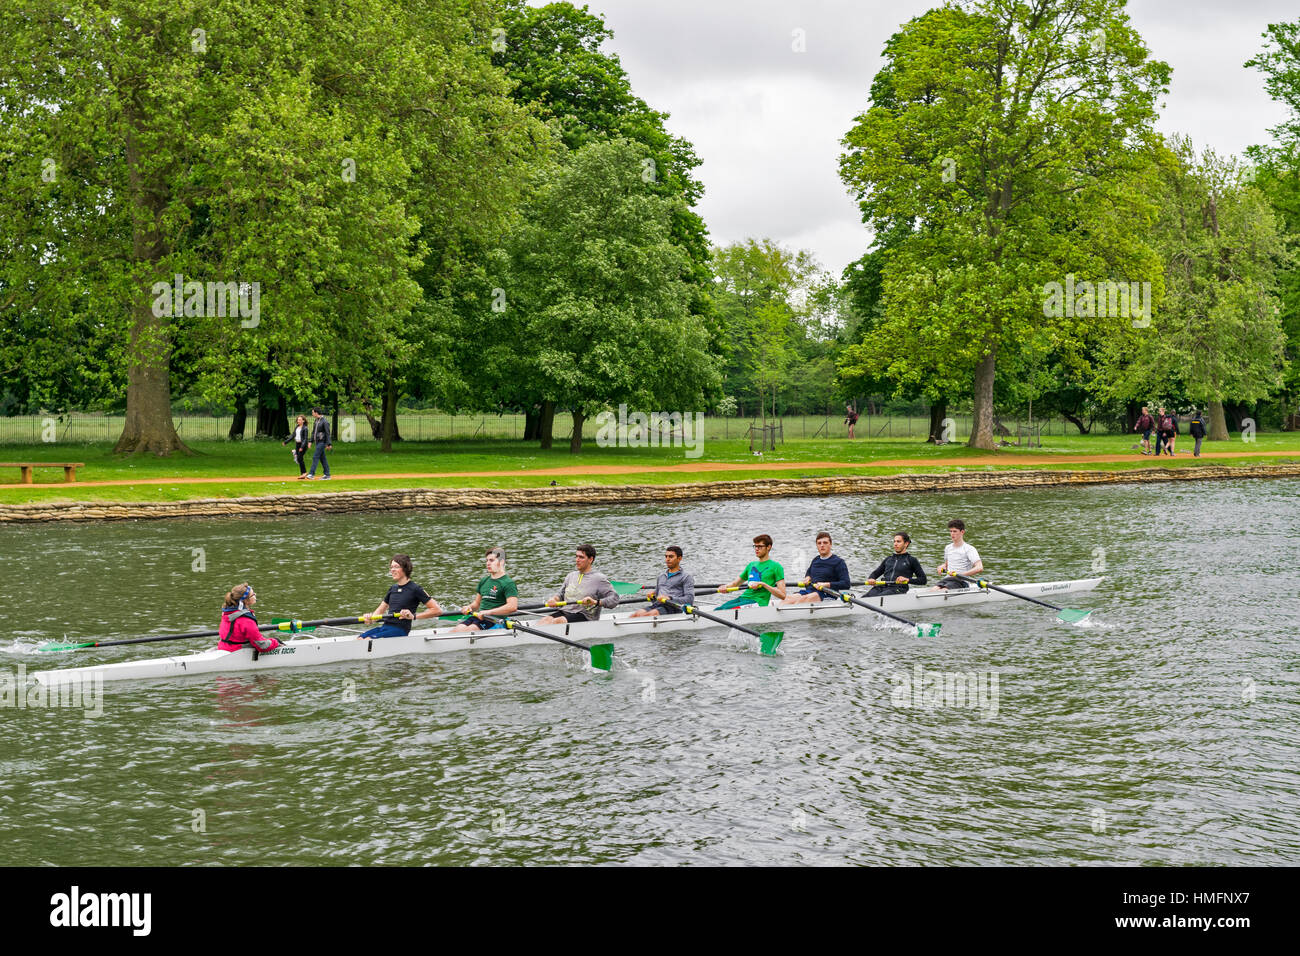 OXFORD UNIVERSITY ROWING TEAMS ON THE RIVER THAMES A COX TALKS TO THE EIGHT ROWERS - Stock Image